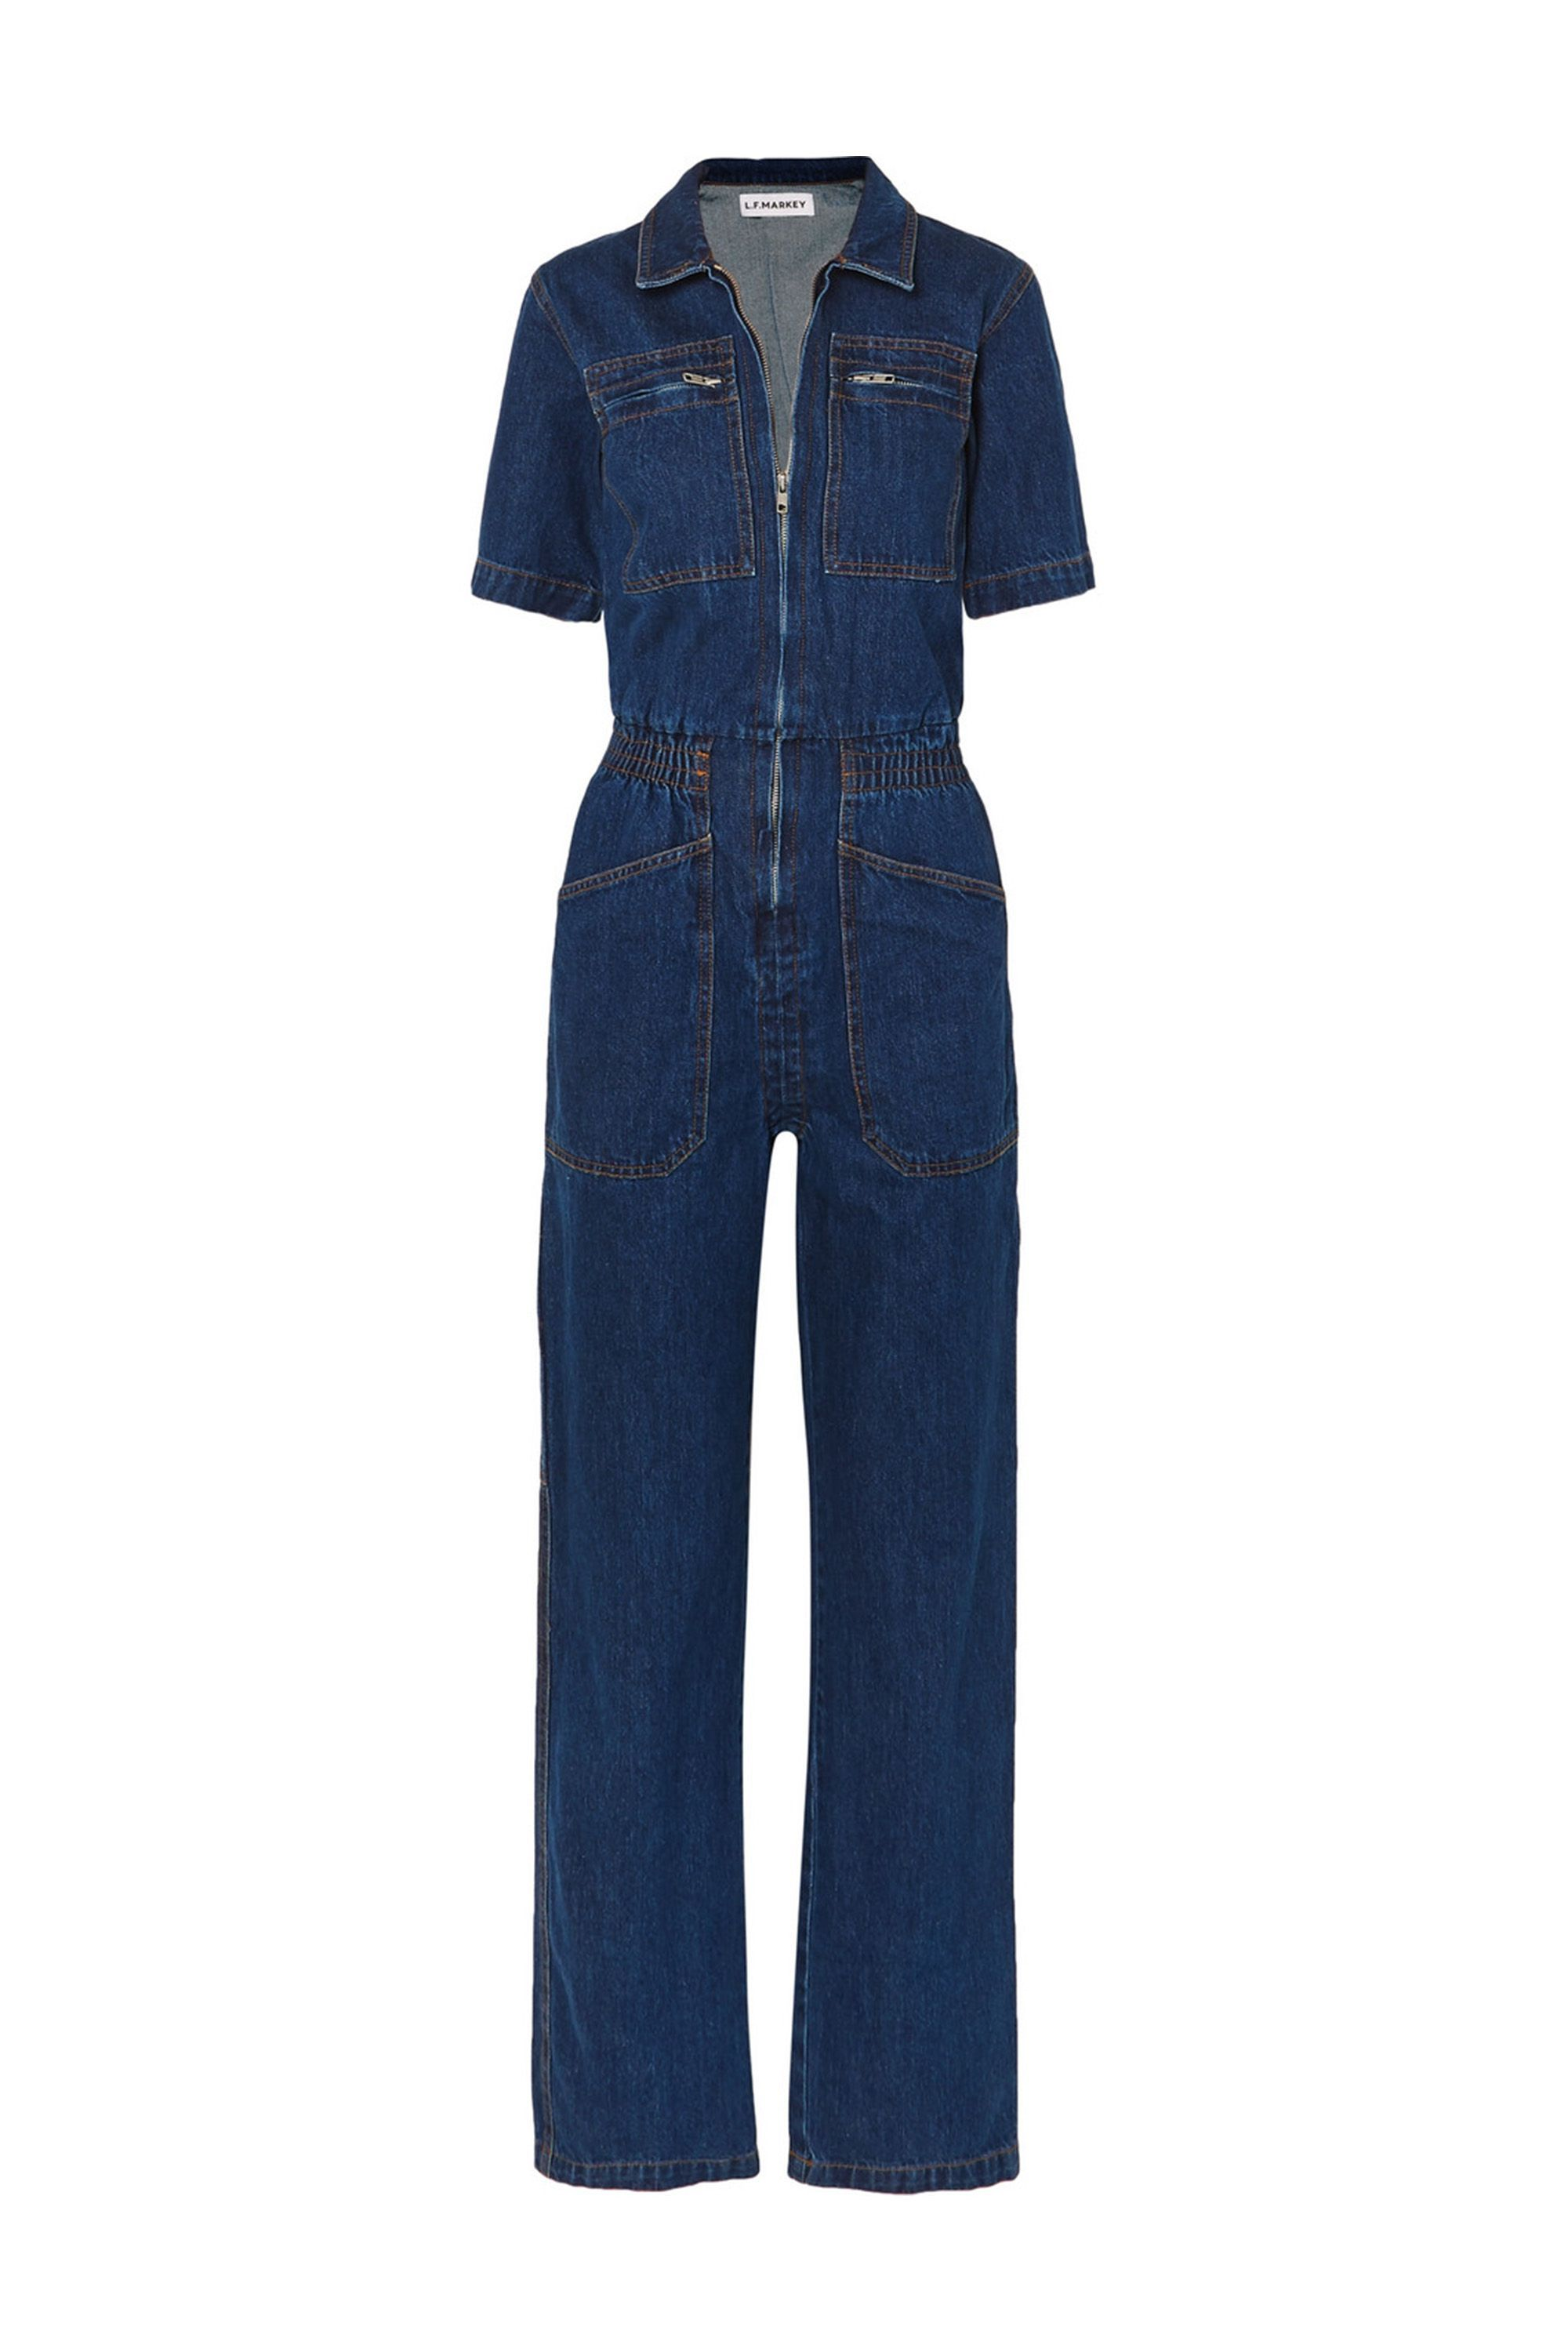 13da515822e8 The Best Denim Jumpsuits of 2018 - 15 Ways to Make The Denim Jumpsuit Work  for You